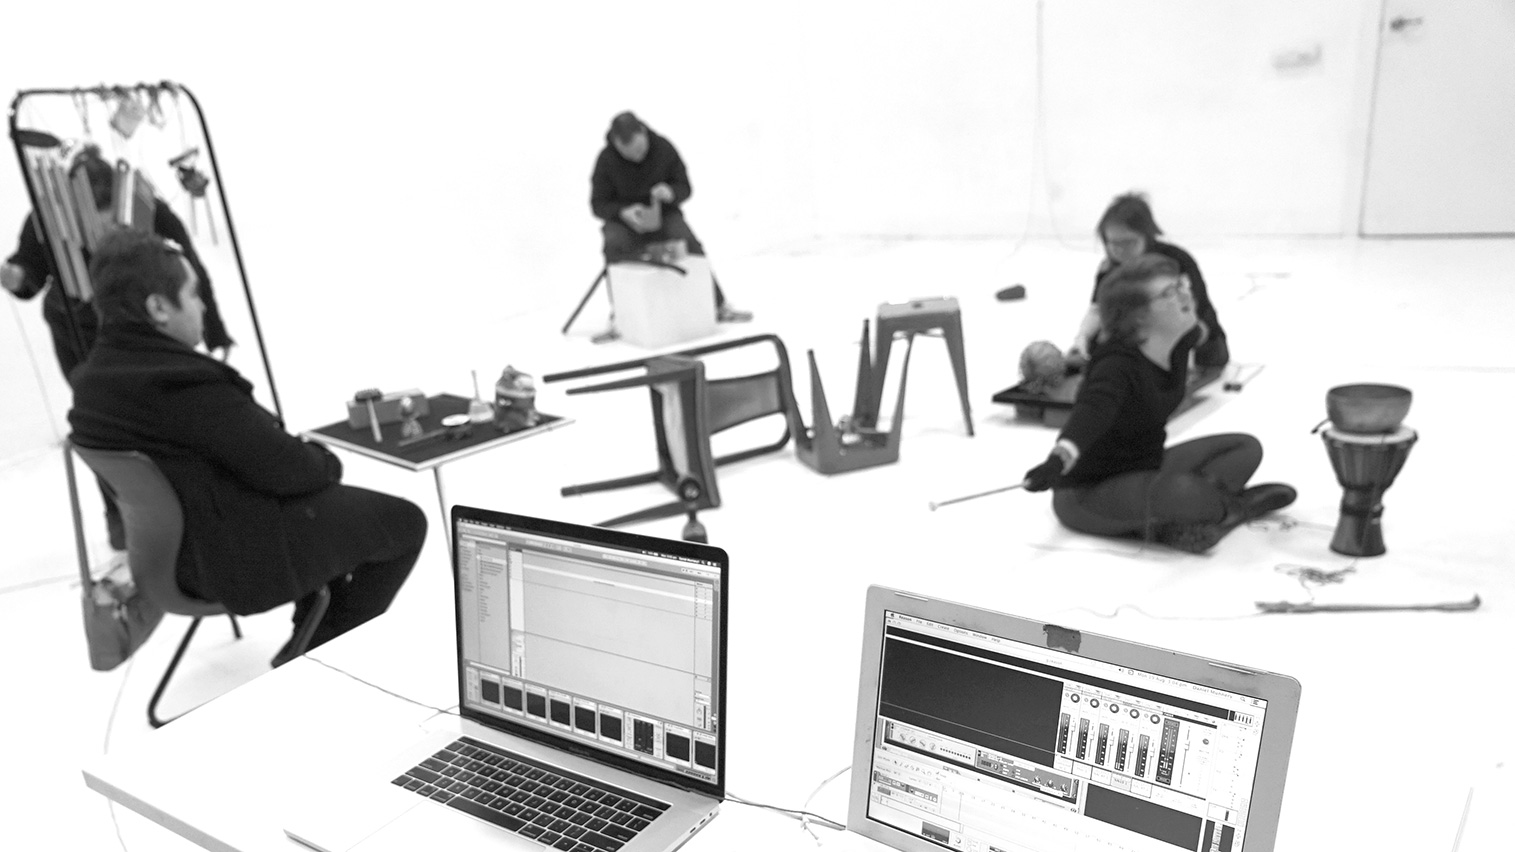 COMPUTERS 4 ARTISTS